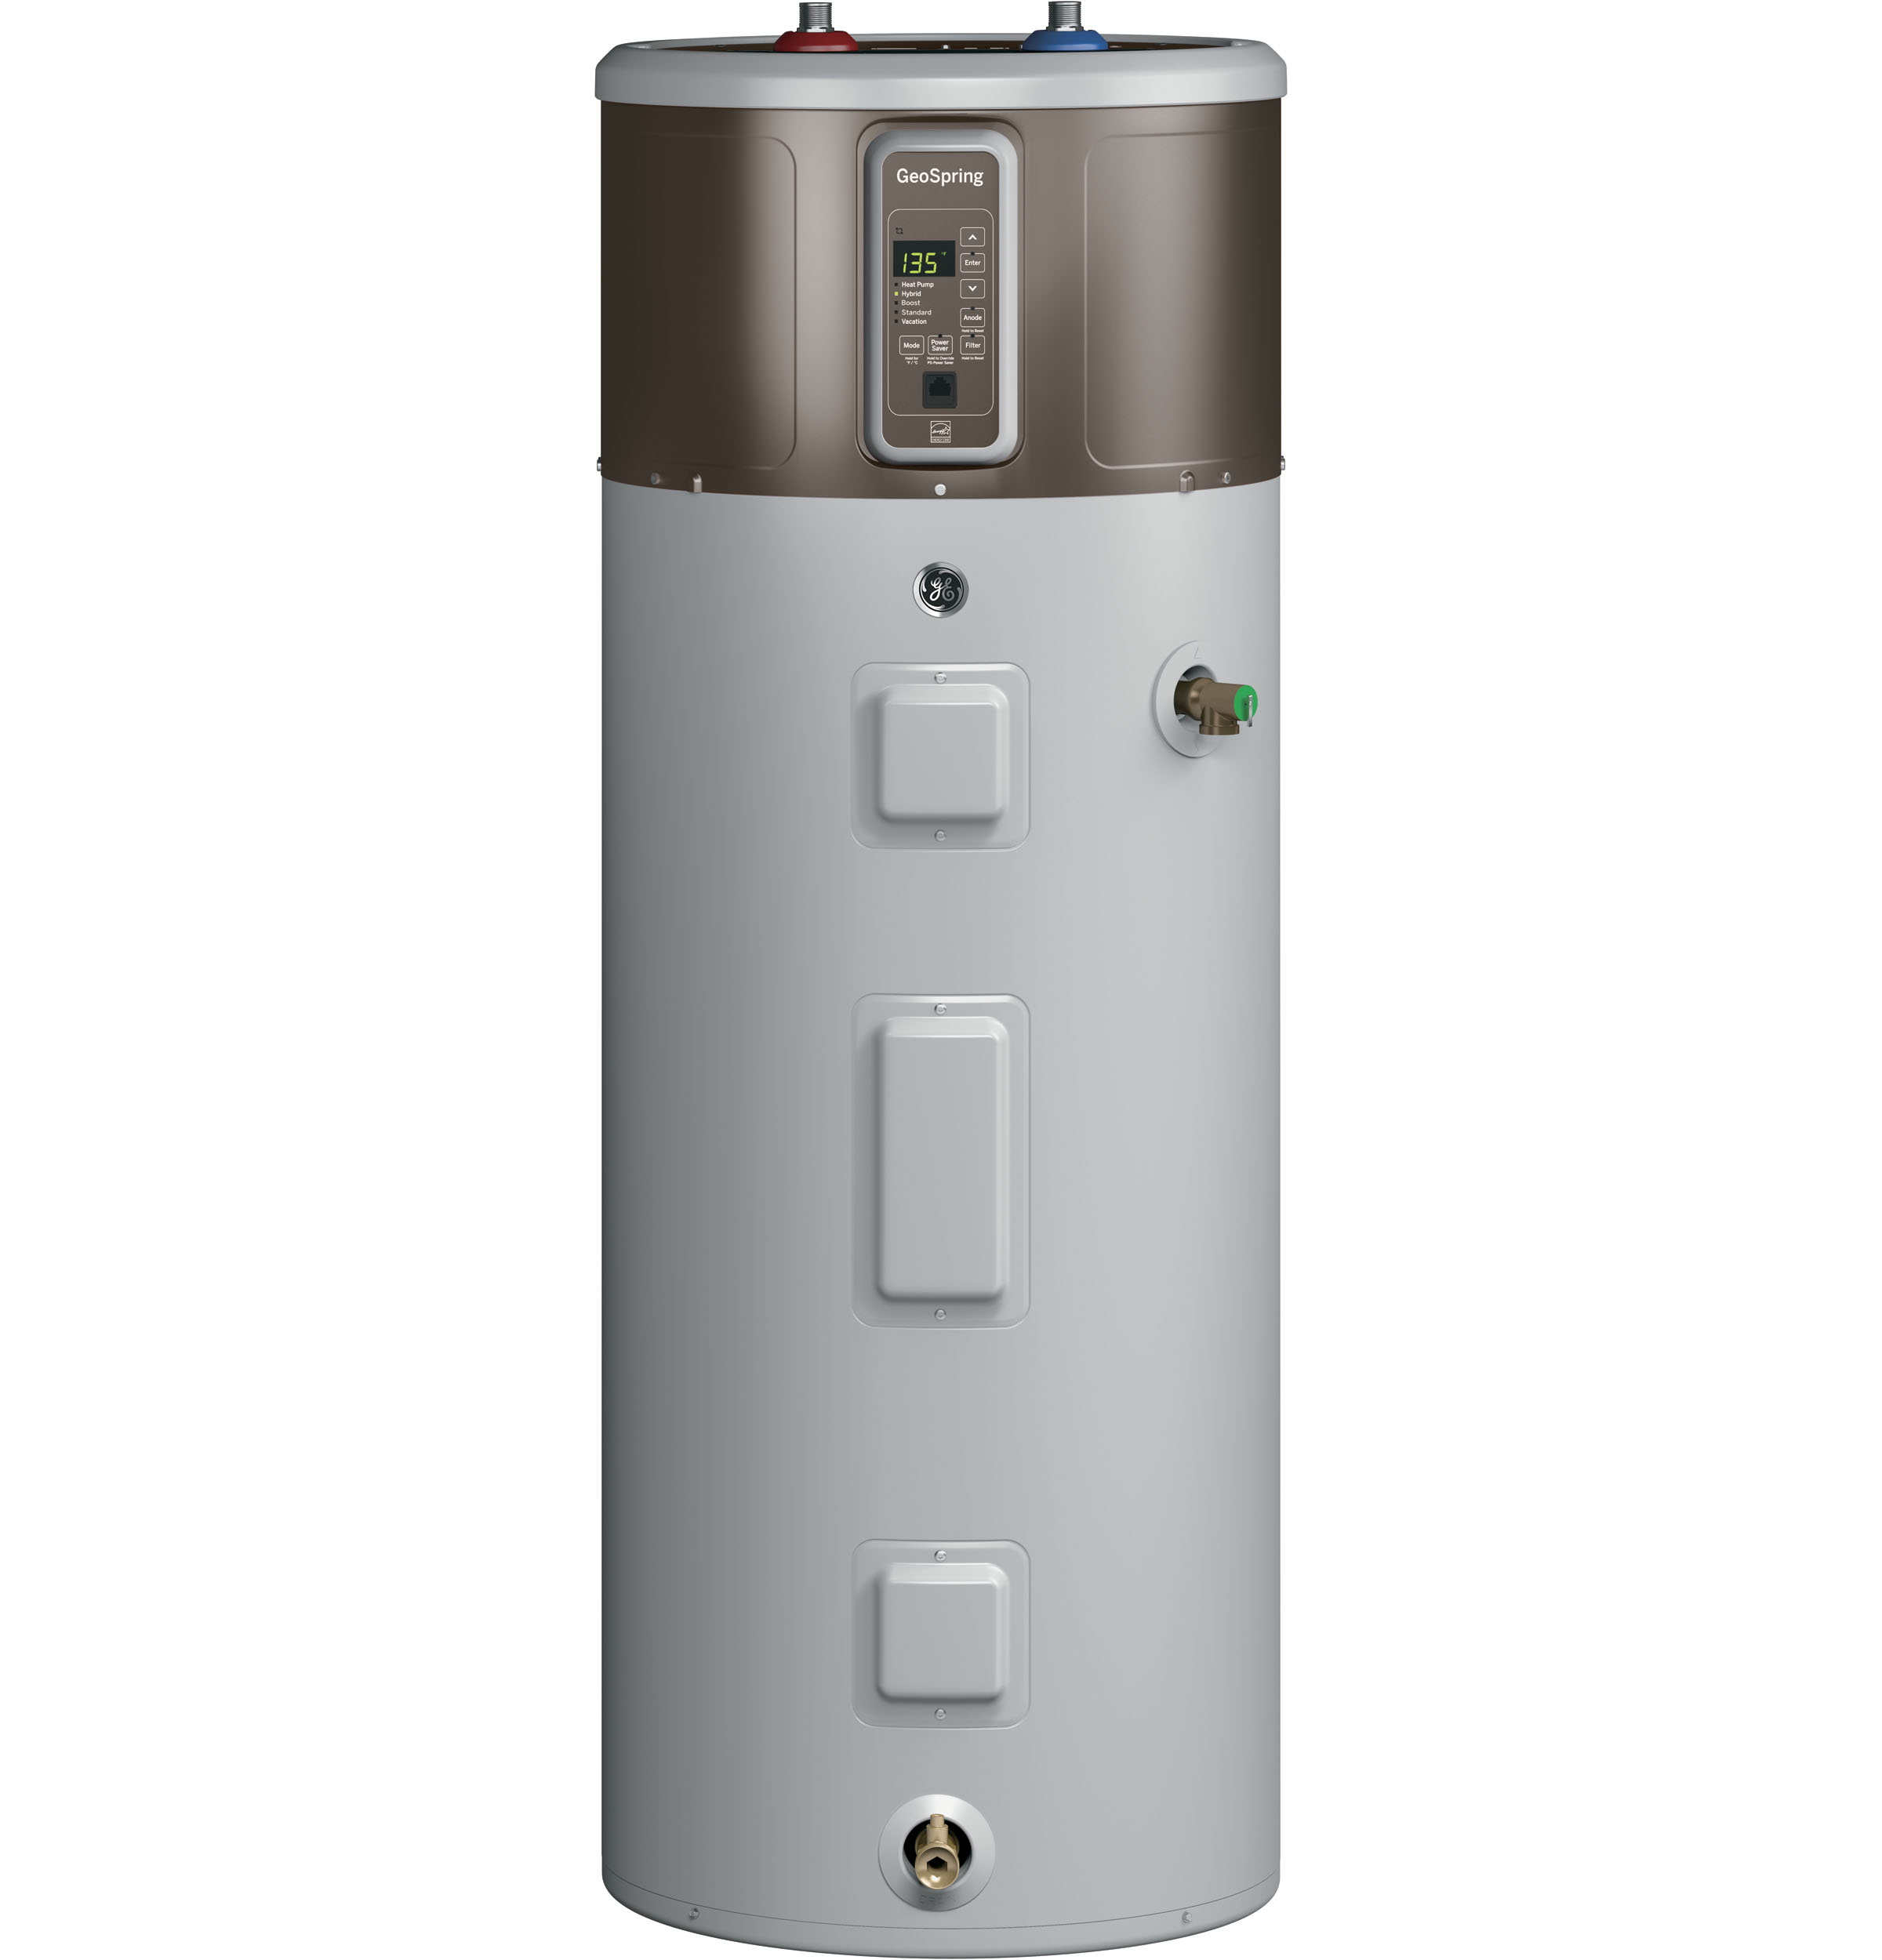 geospring pro heat pump water heater authorized reseller ge appliances. Black Bedroom Furniture Sets. Home Design Ideas